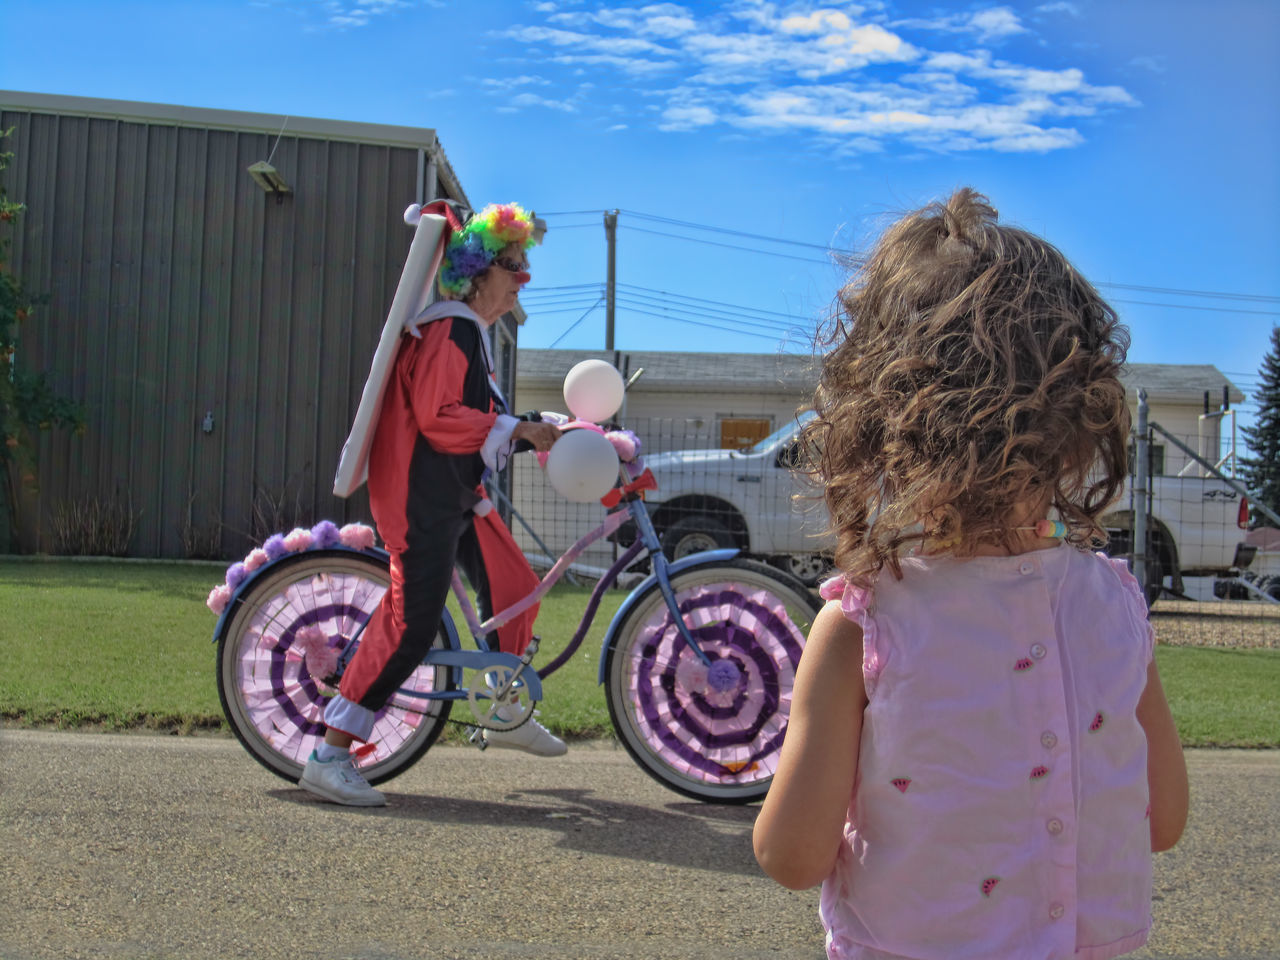 Beautiful stock photos of clown, two people, outdoors, bicycle, transportation